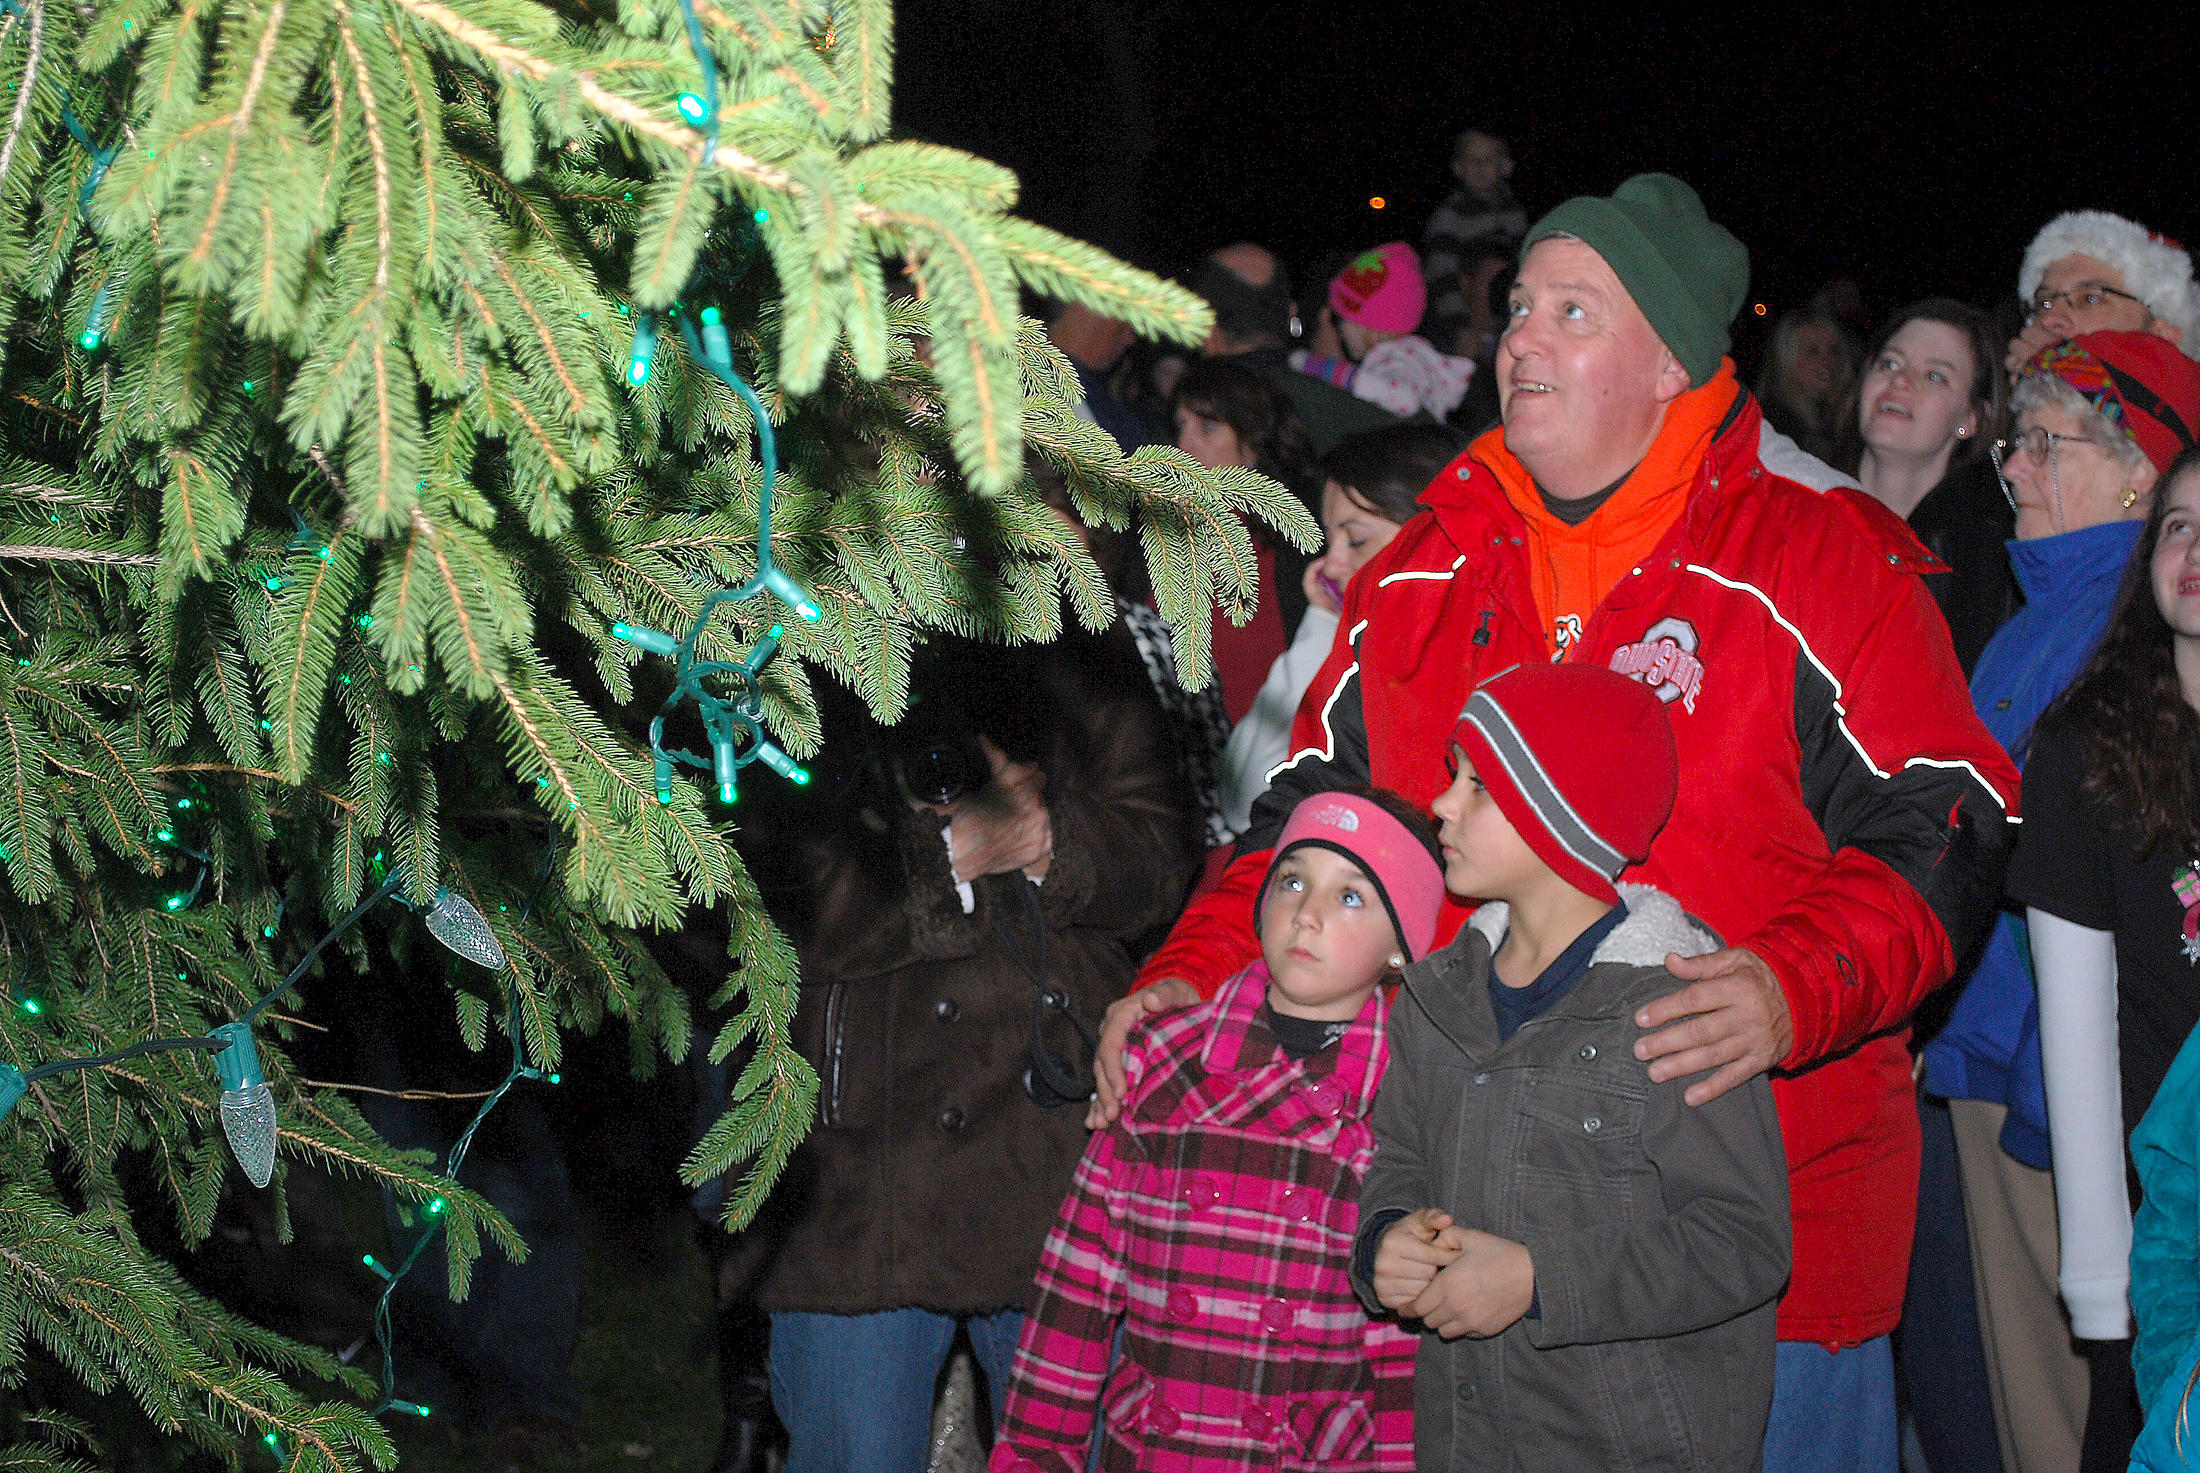 Larry Mileski looks at the Westfield Christmas Tree with his grandchildren, Olivia and Trenton Mileski, at last year's tree lighting. (Photo by Robert Herrington)